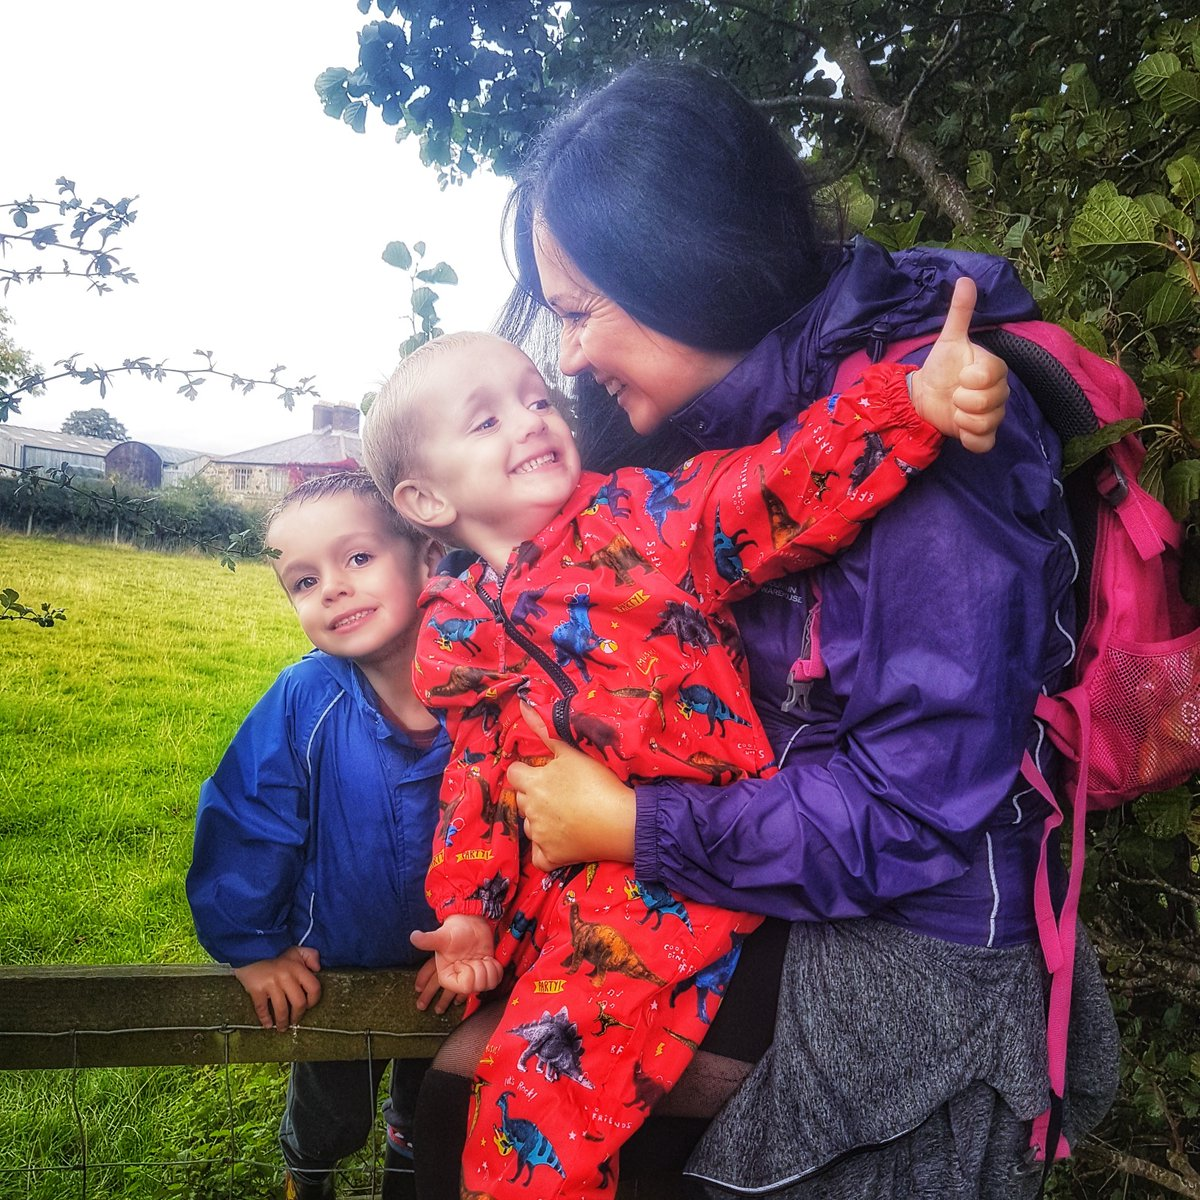 The thoroughly modern mummy: why there is no such thing as work/life balance http://dld.bz/hQ8HM #worklifebalance #worklifeblend #modernmummypic.twitter.com/9KRtD87Fzm